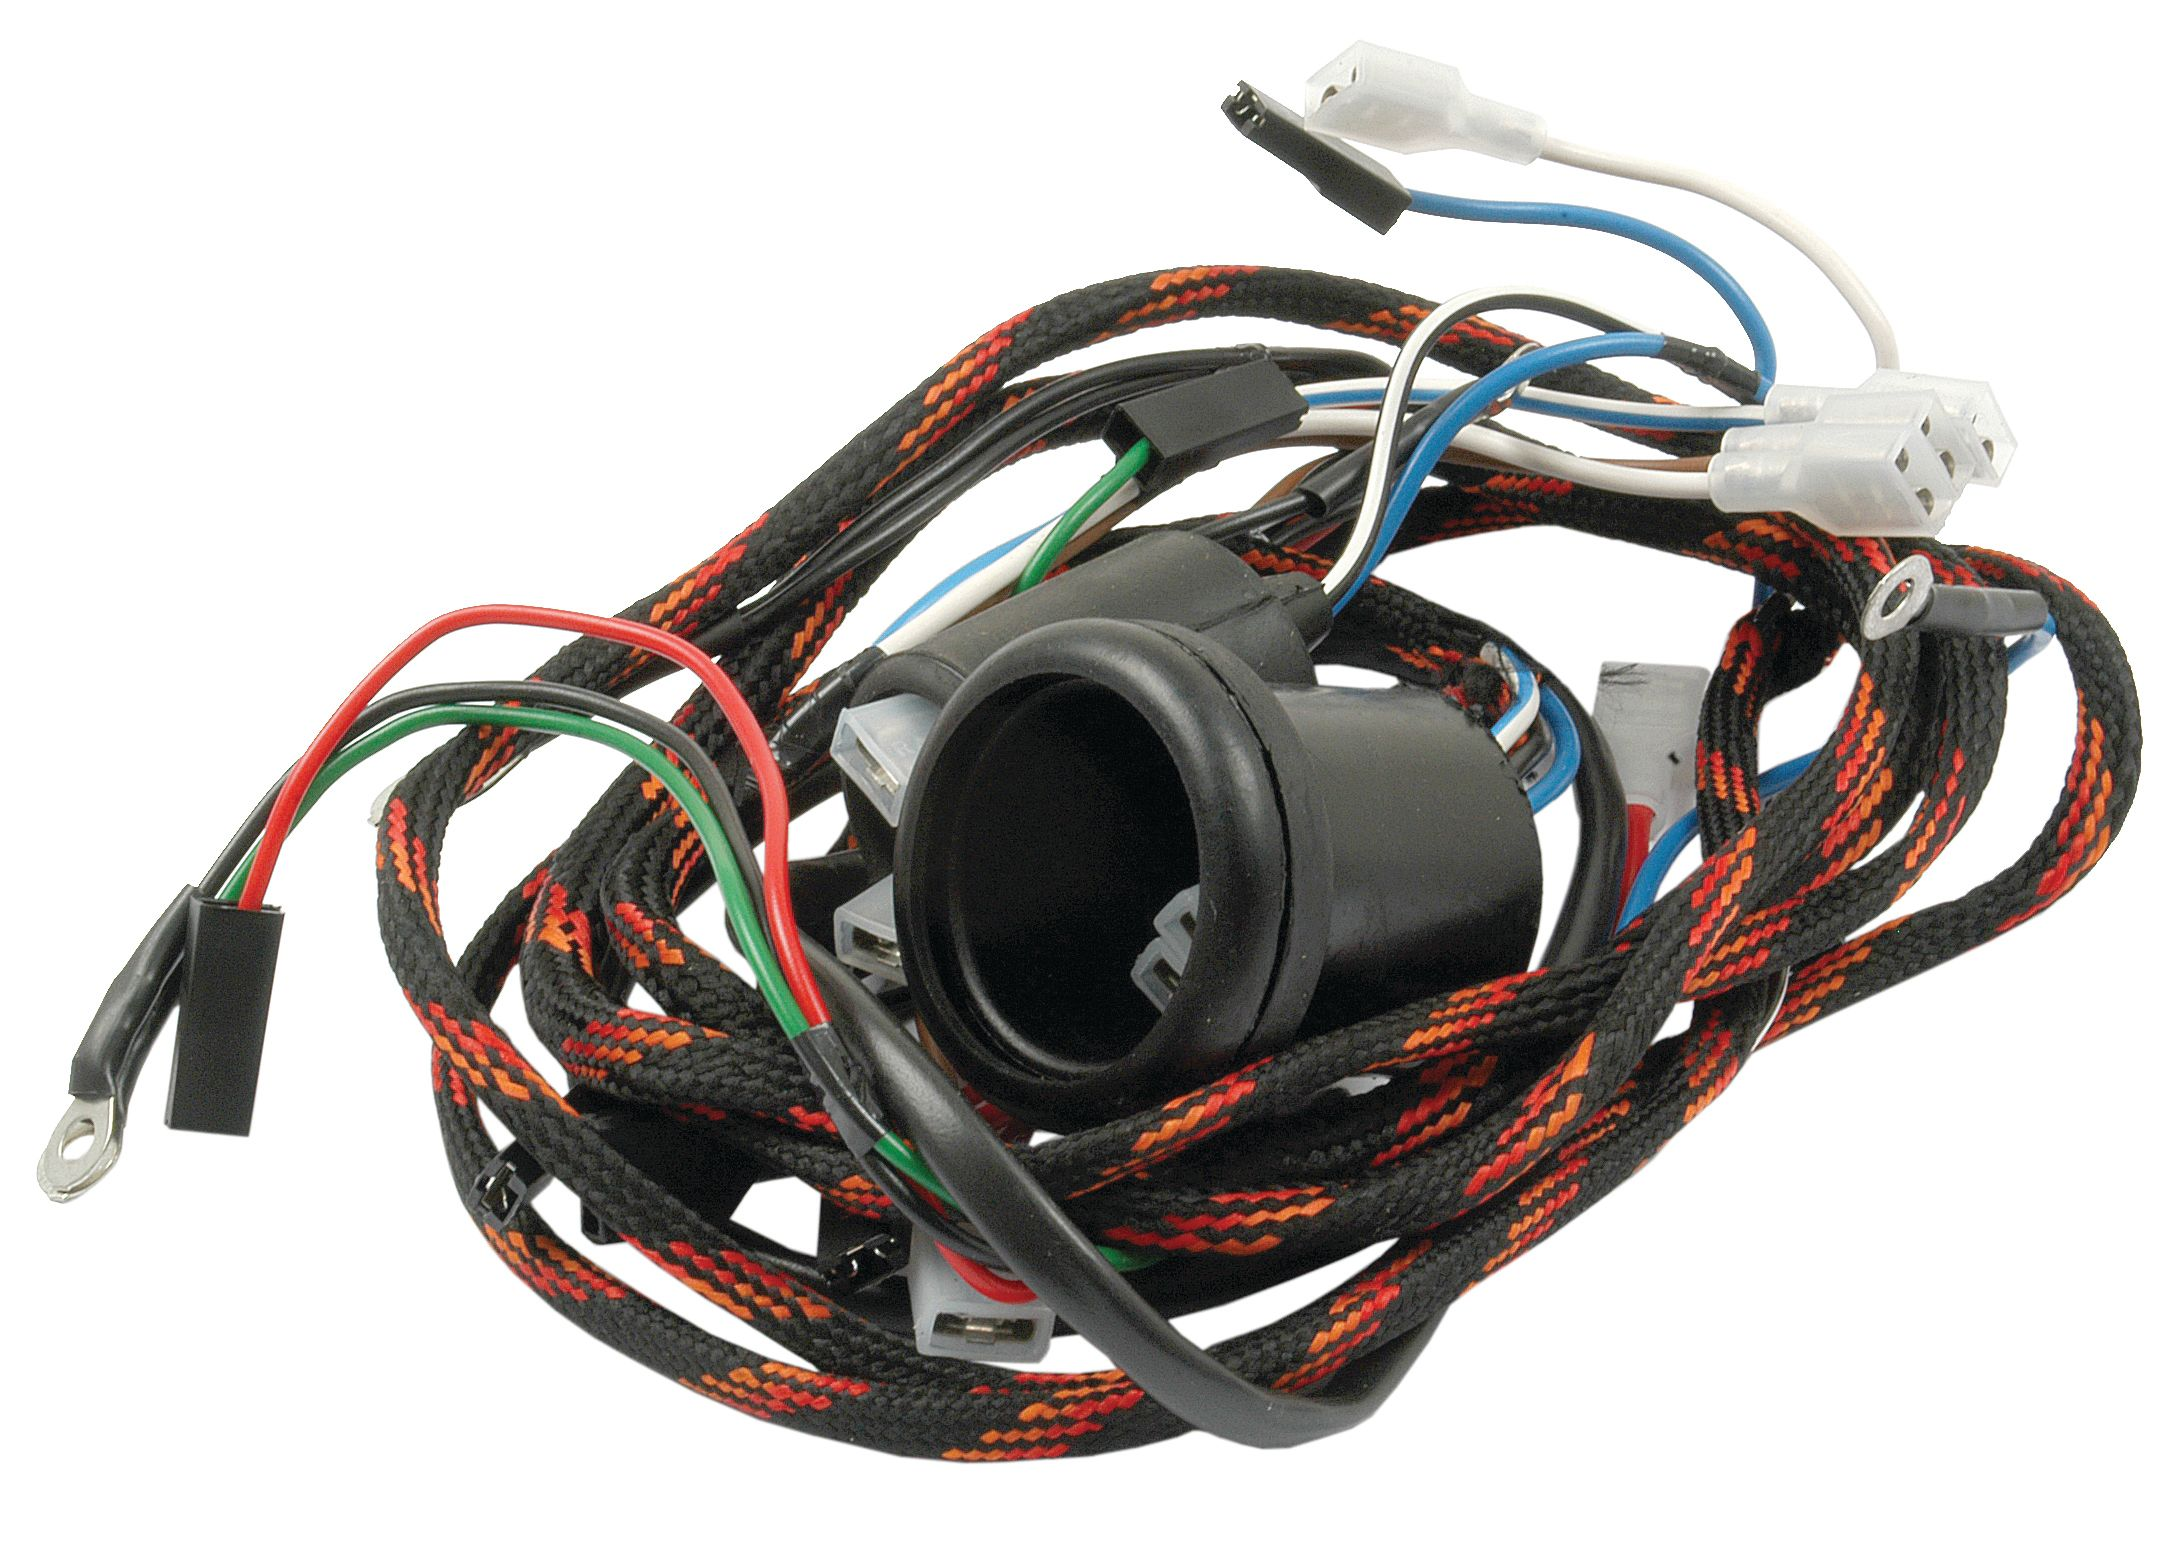 Perkins Wiring Harness Example Electrical Diagram Tractor Electrics Spare Parts Buy Any Part Engine 4108